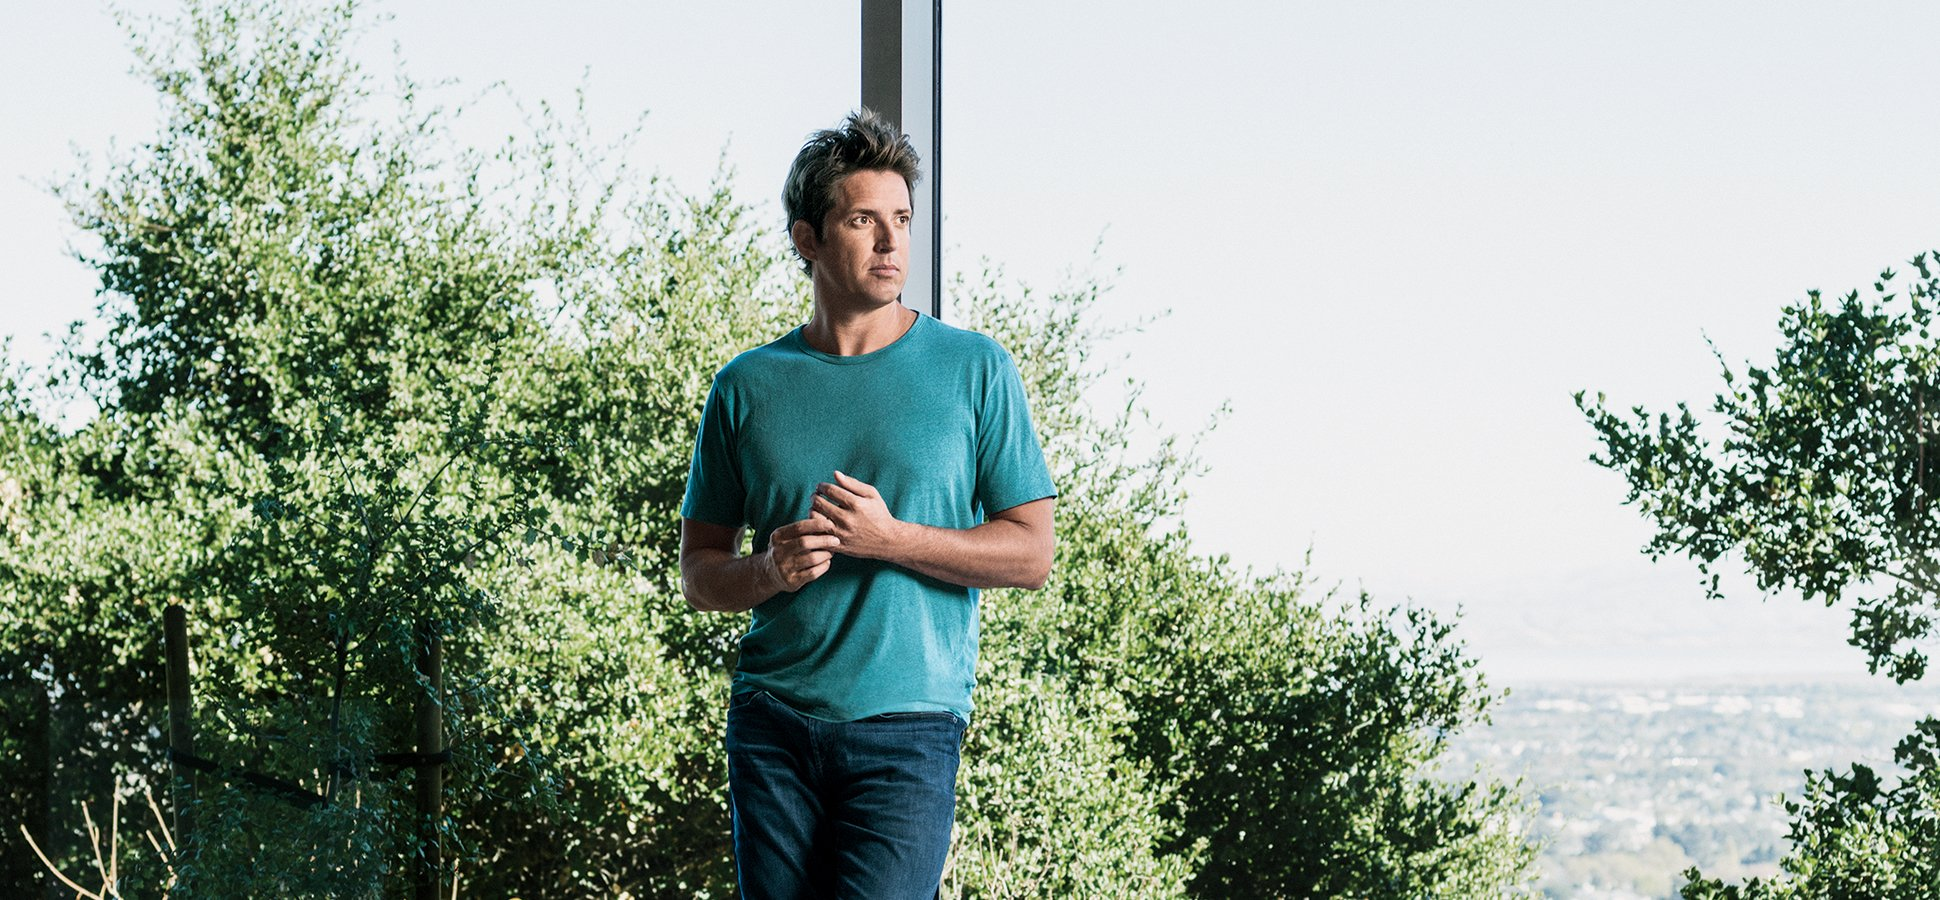 The Untold Story of How Massive Success Made GoPro's CEO Lose His Way. Can He Recover? | Inc.com